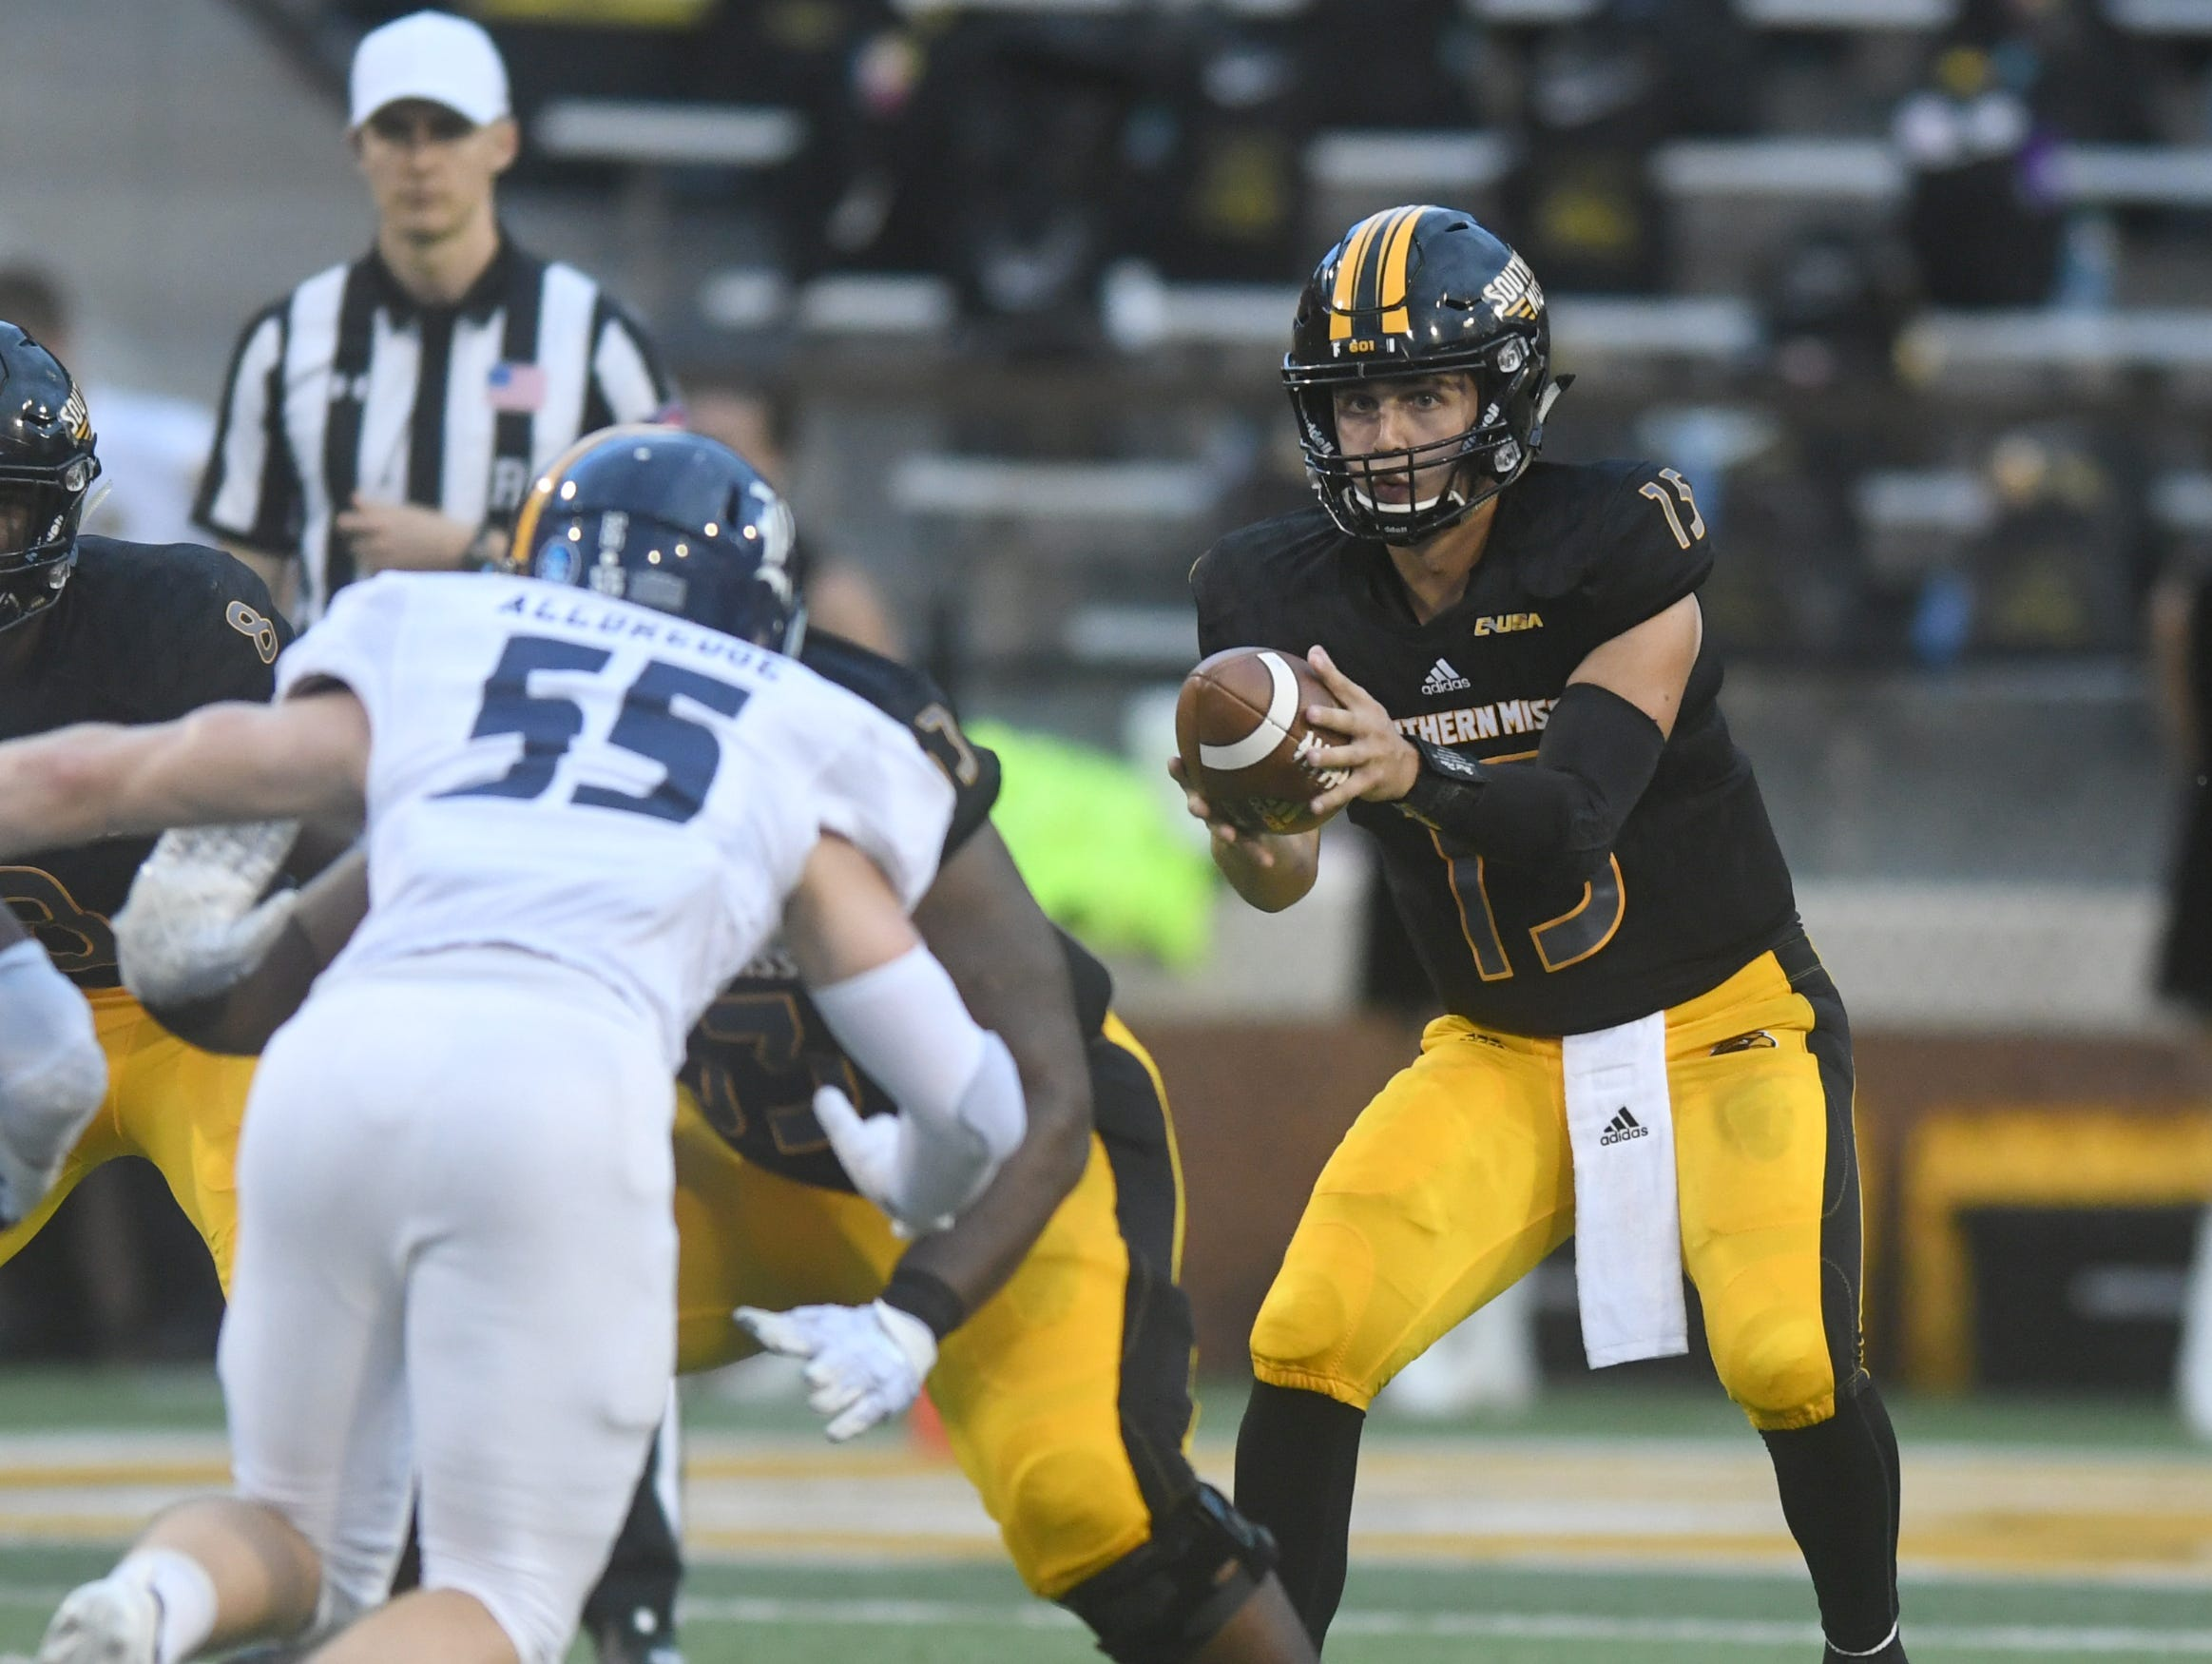 Southern Miss quarterback Jack Abraham catches a snap in a game against Rice at M.M. Roberts Stadium on Saturday, September 22, 2018.